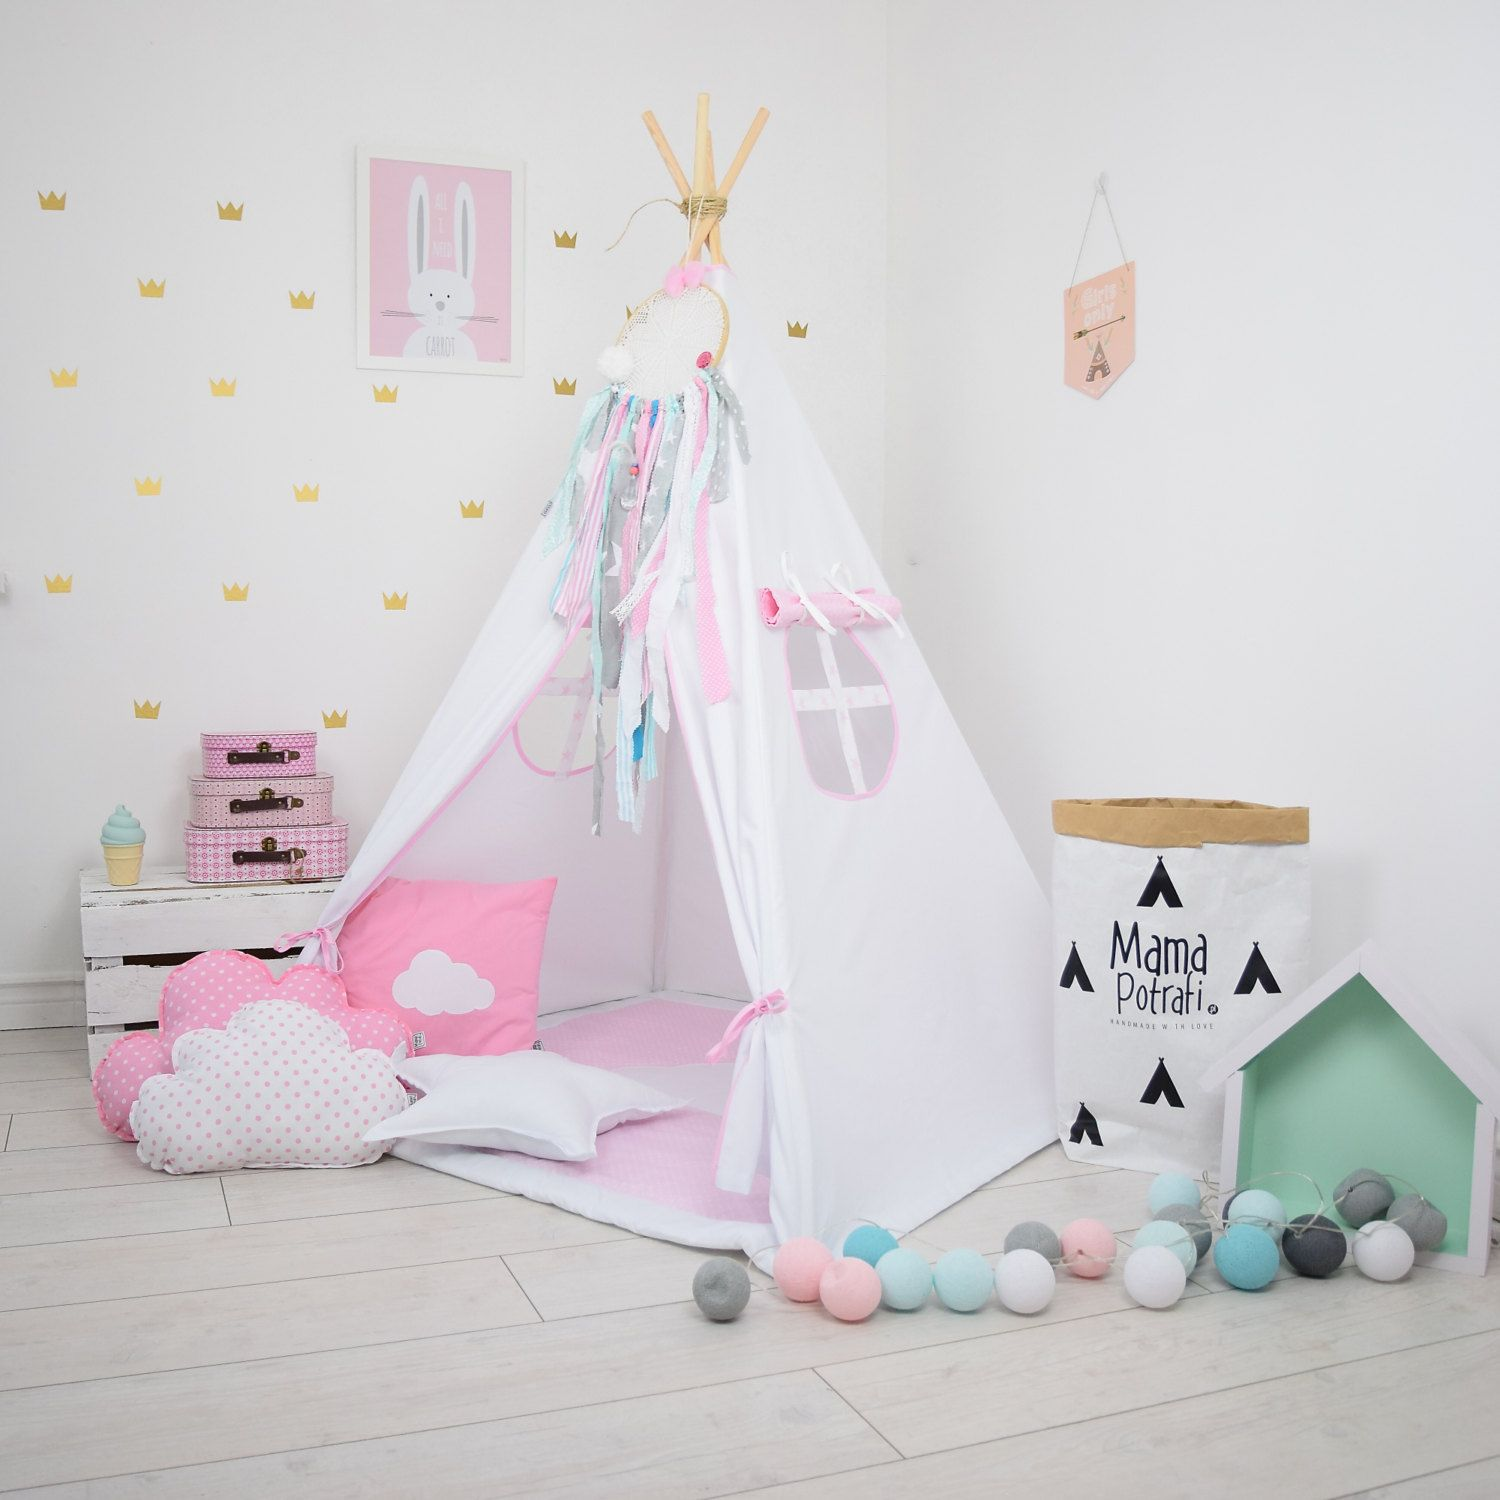 Teepee Set Kids Play Teepee Tent Tipi Kid Playhouse Wigwam Zelt Tente -Snow Queen by & Teepee Set Kids Play Teepee Tent Tipi Kid Playhouse Wigwam Zelt ...